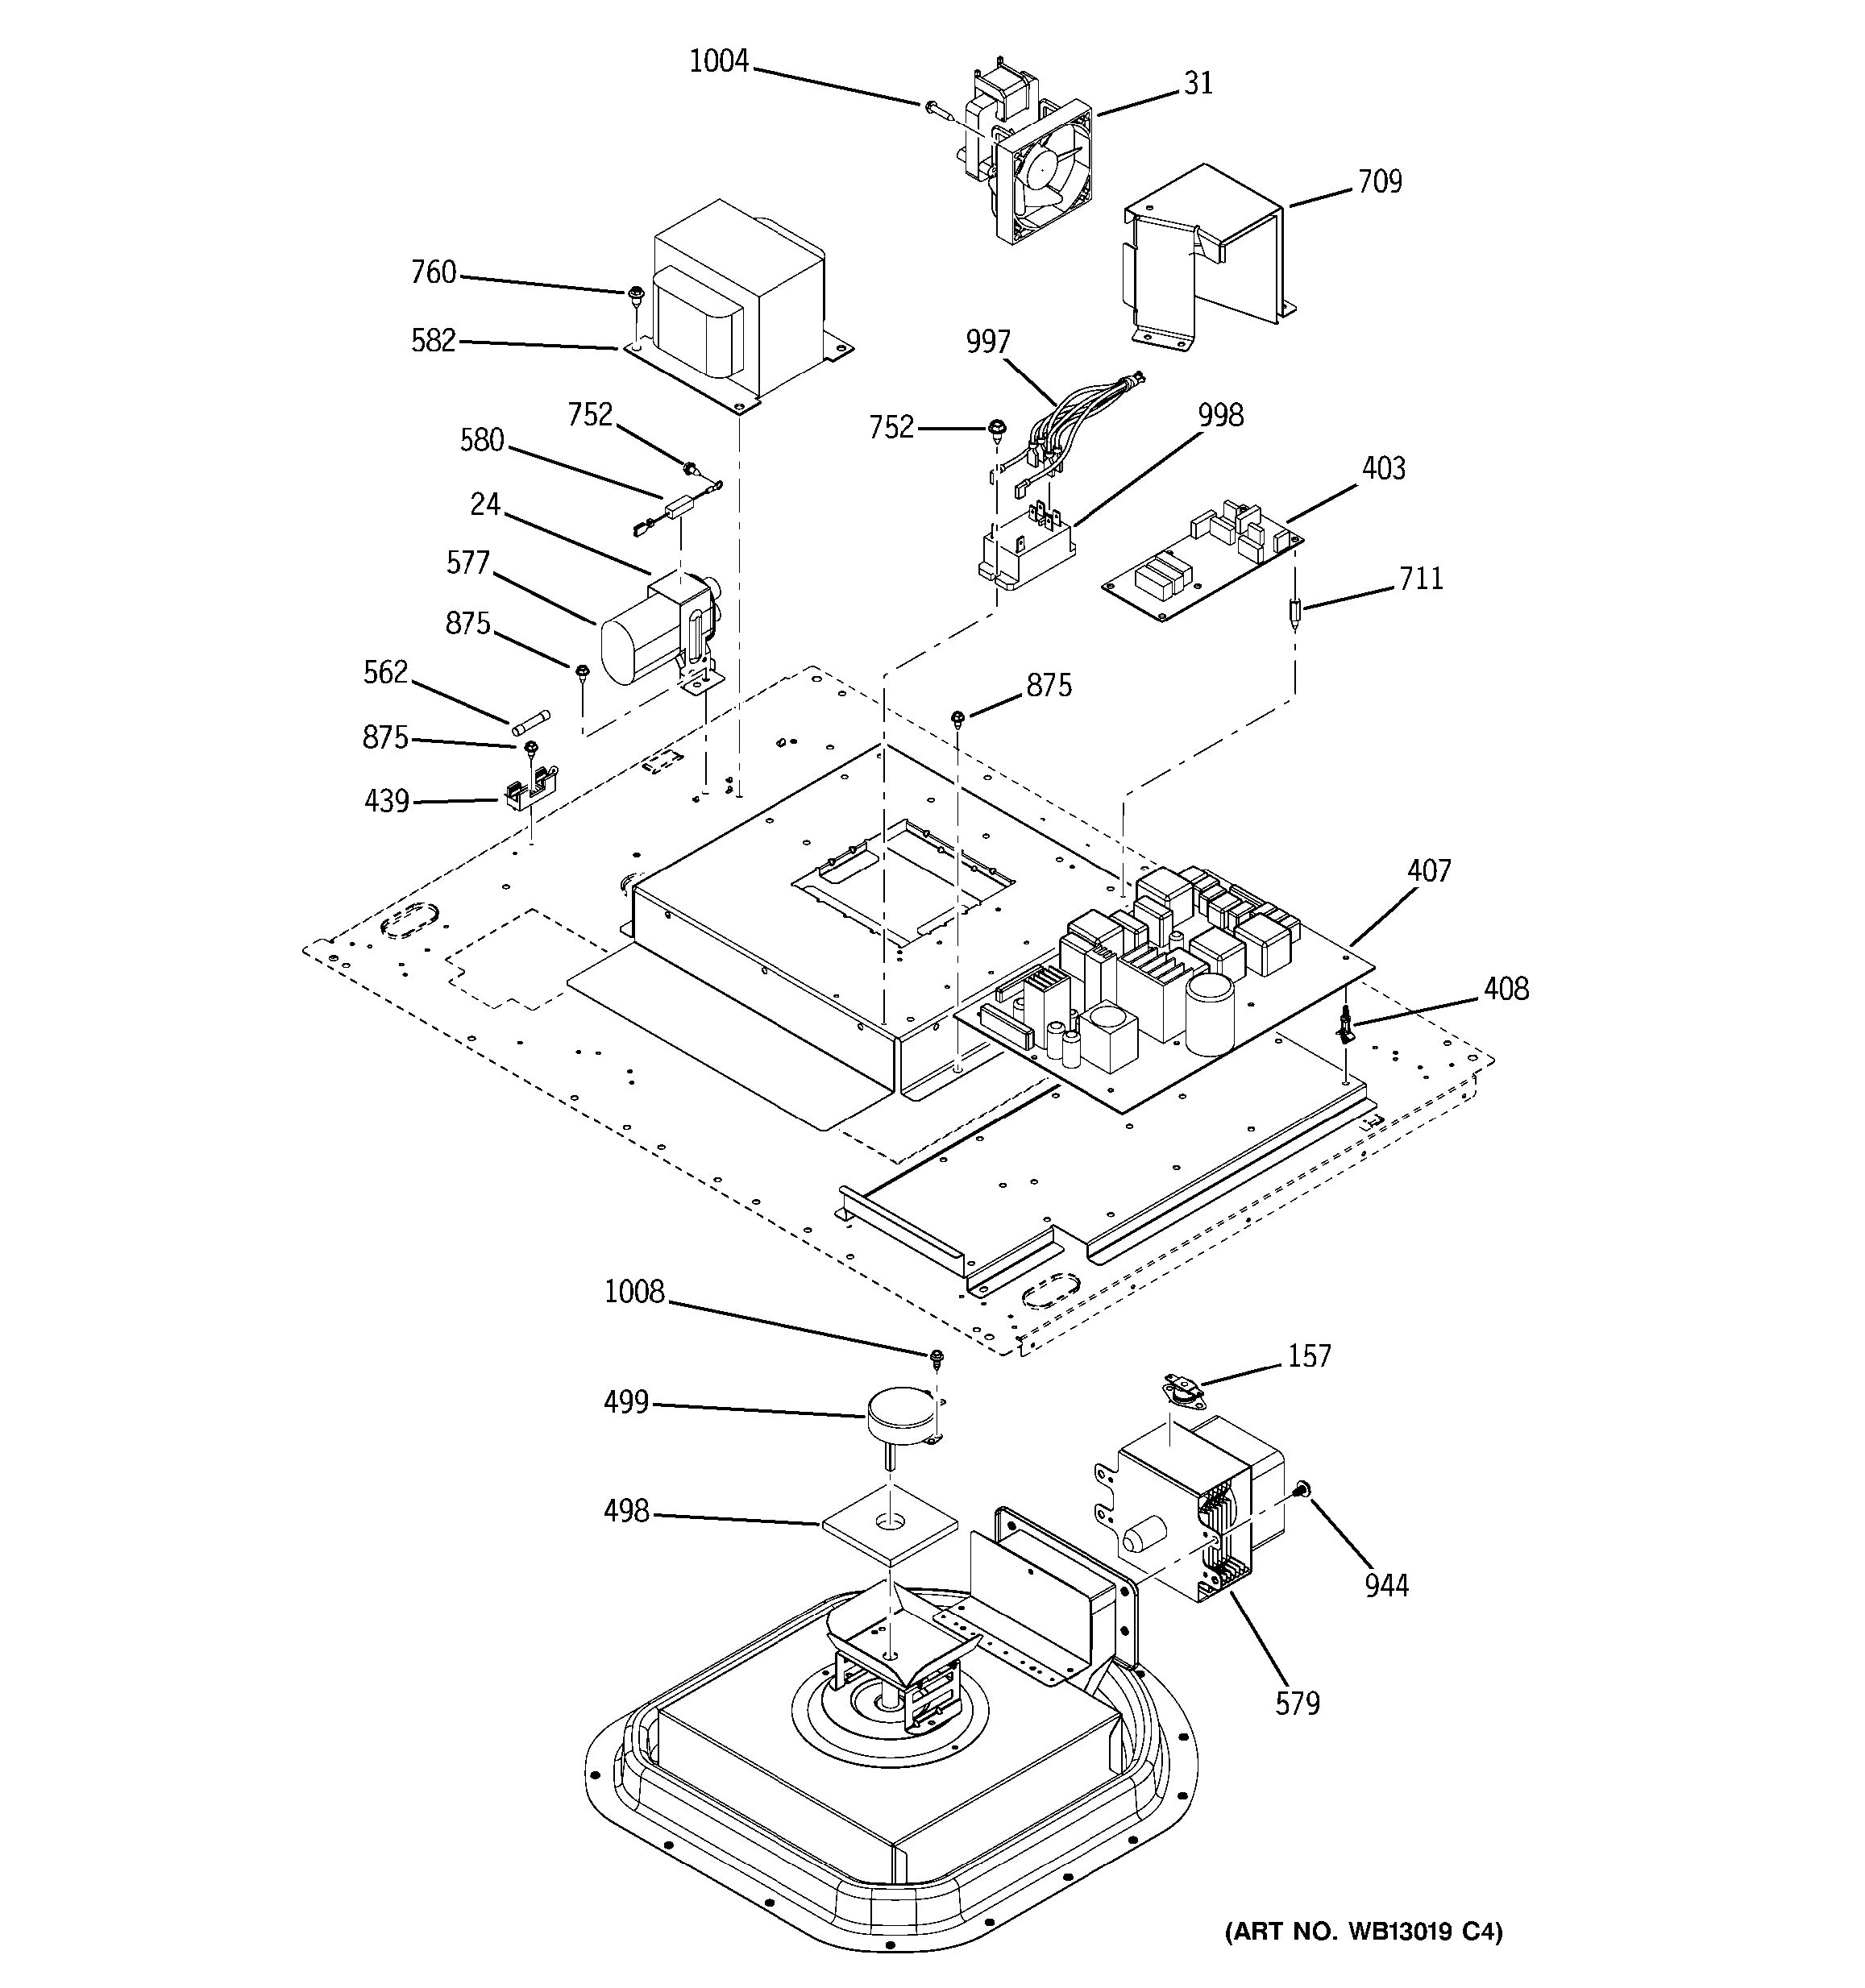 assembly view for control section